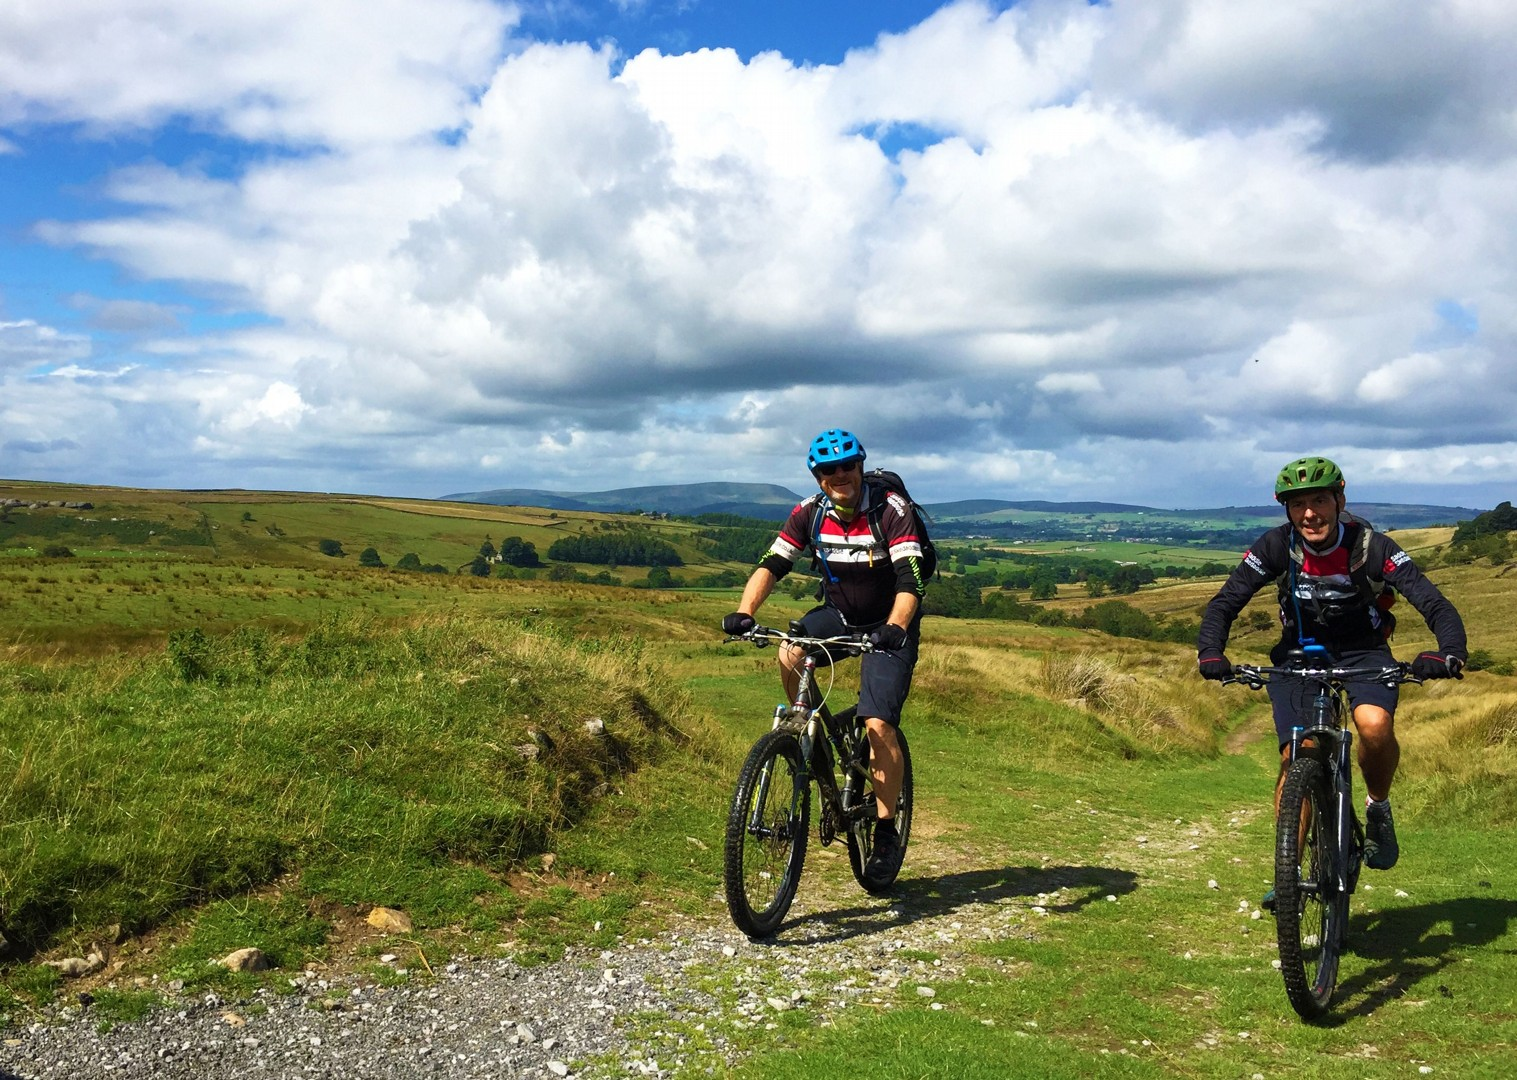 long-lane-track-mtb-mountain-biking-pennine-bridleway.JPG - UK - Pennine Bridleway - Guided Mountain Bike Weekend - Mountain Biking